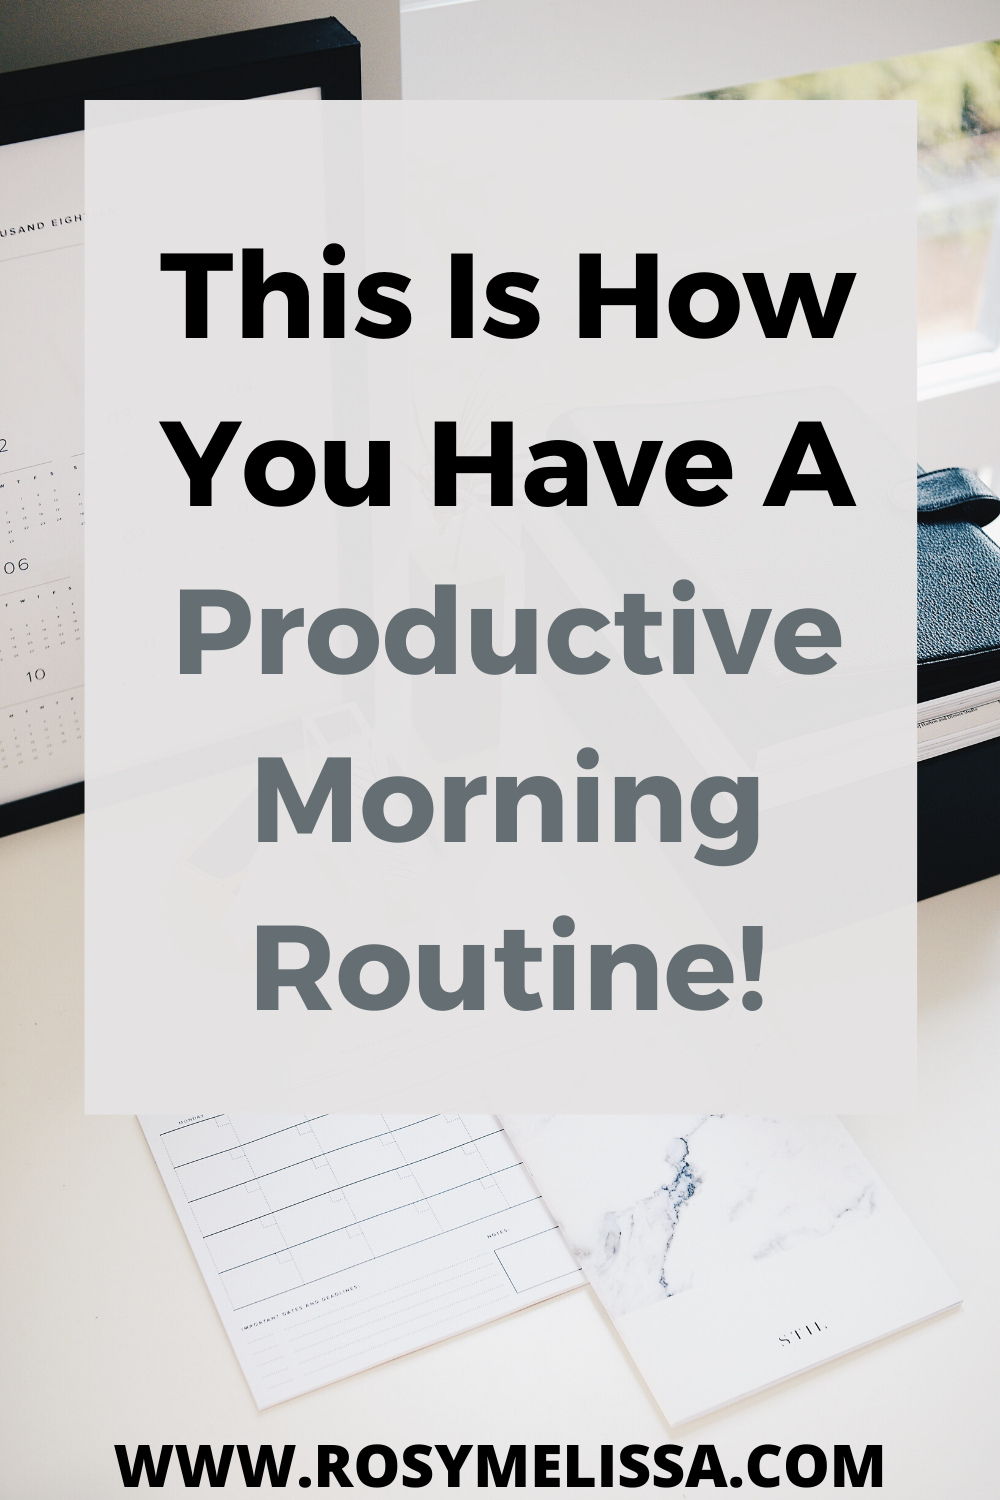 15 secrets to have a productive morning routine, productivity, mornings